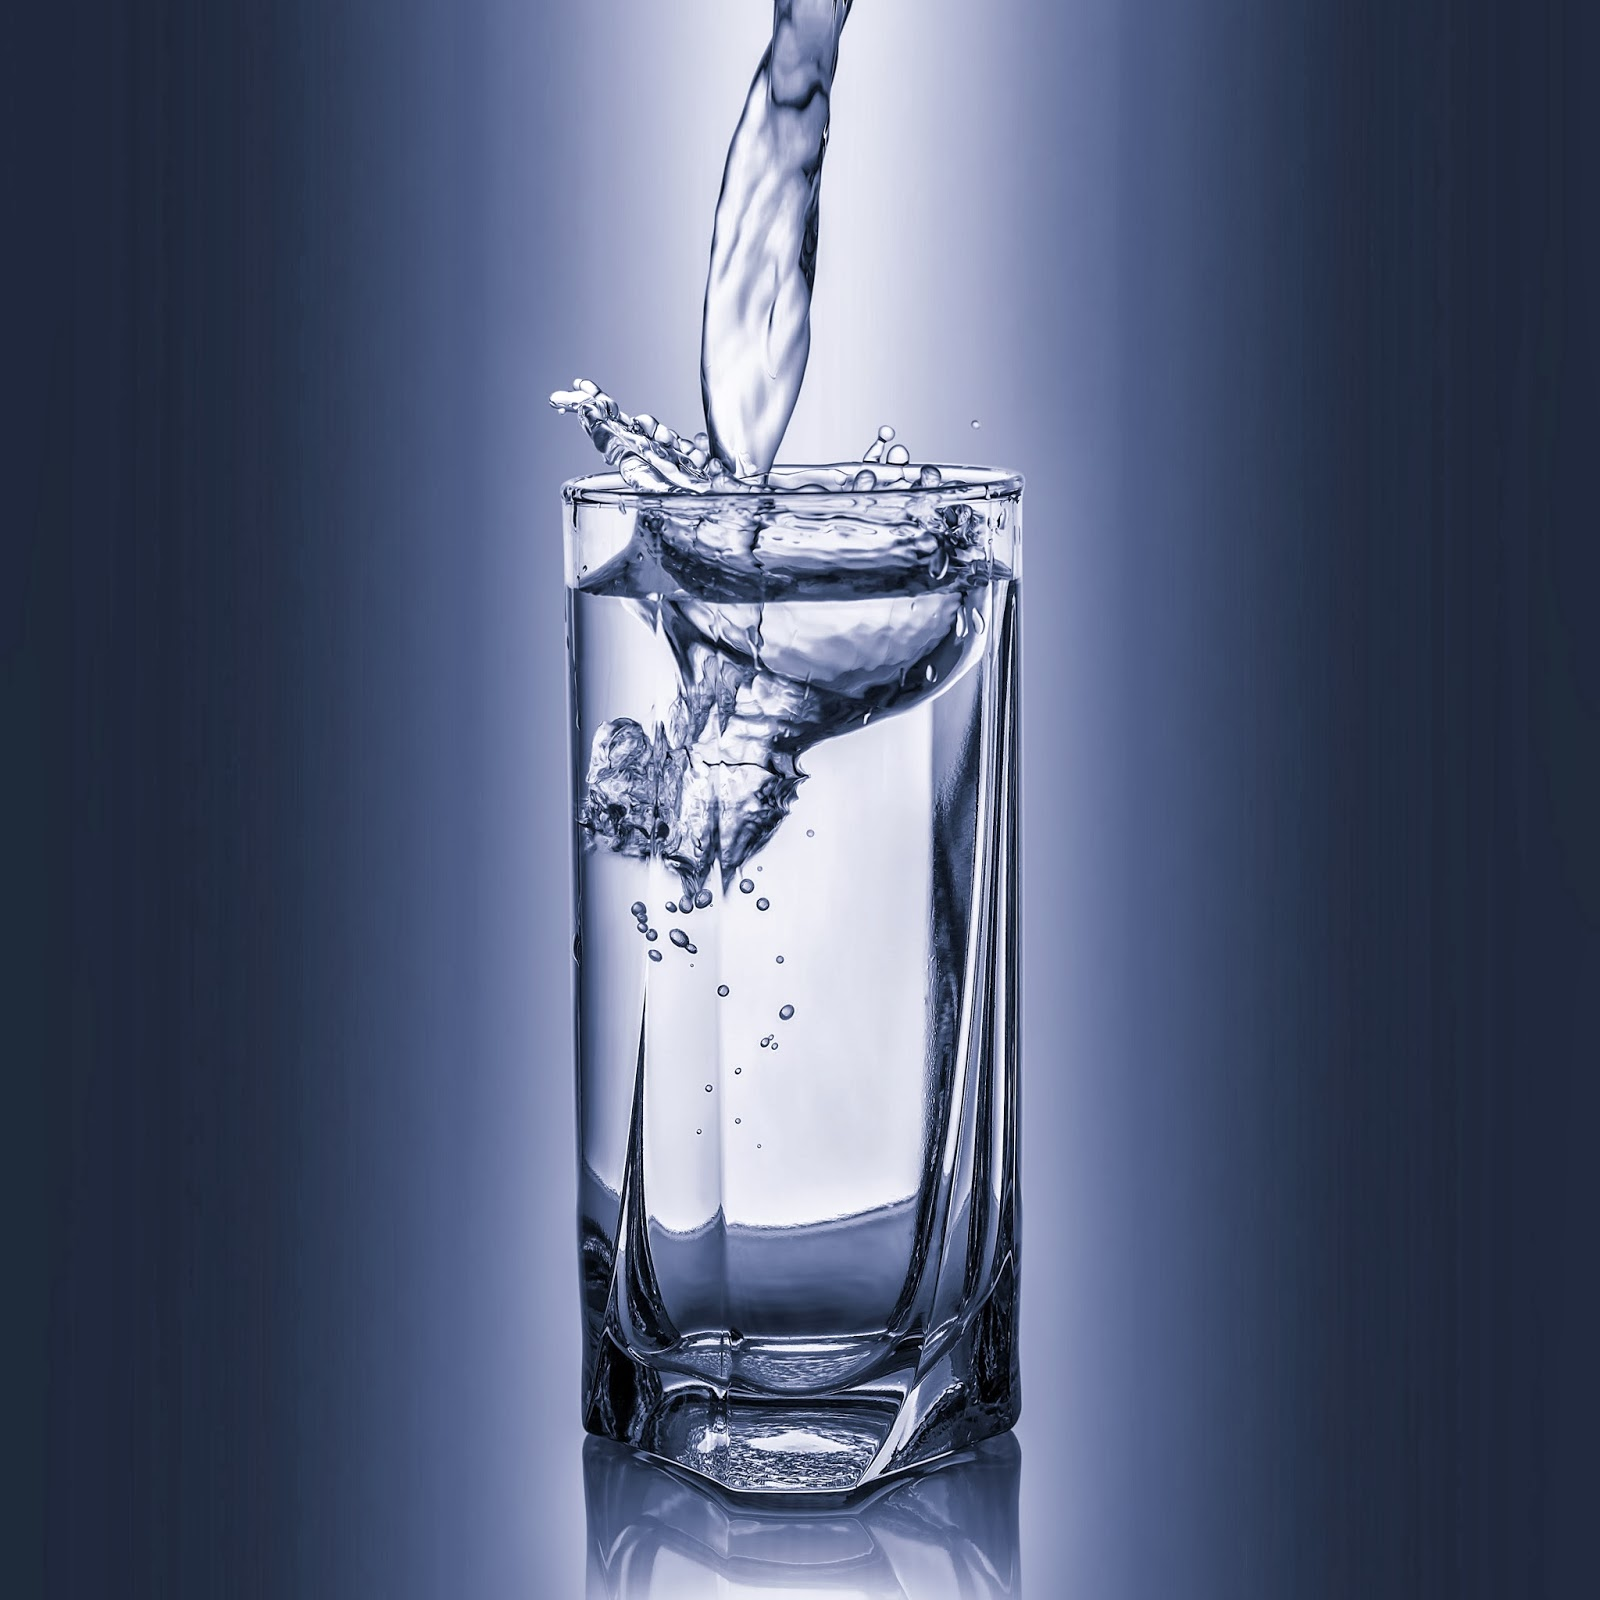 78% of Americans don't drink the recommended 8 cups of water per day.